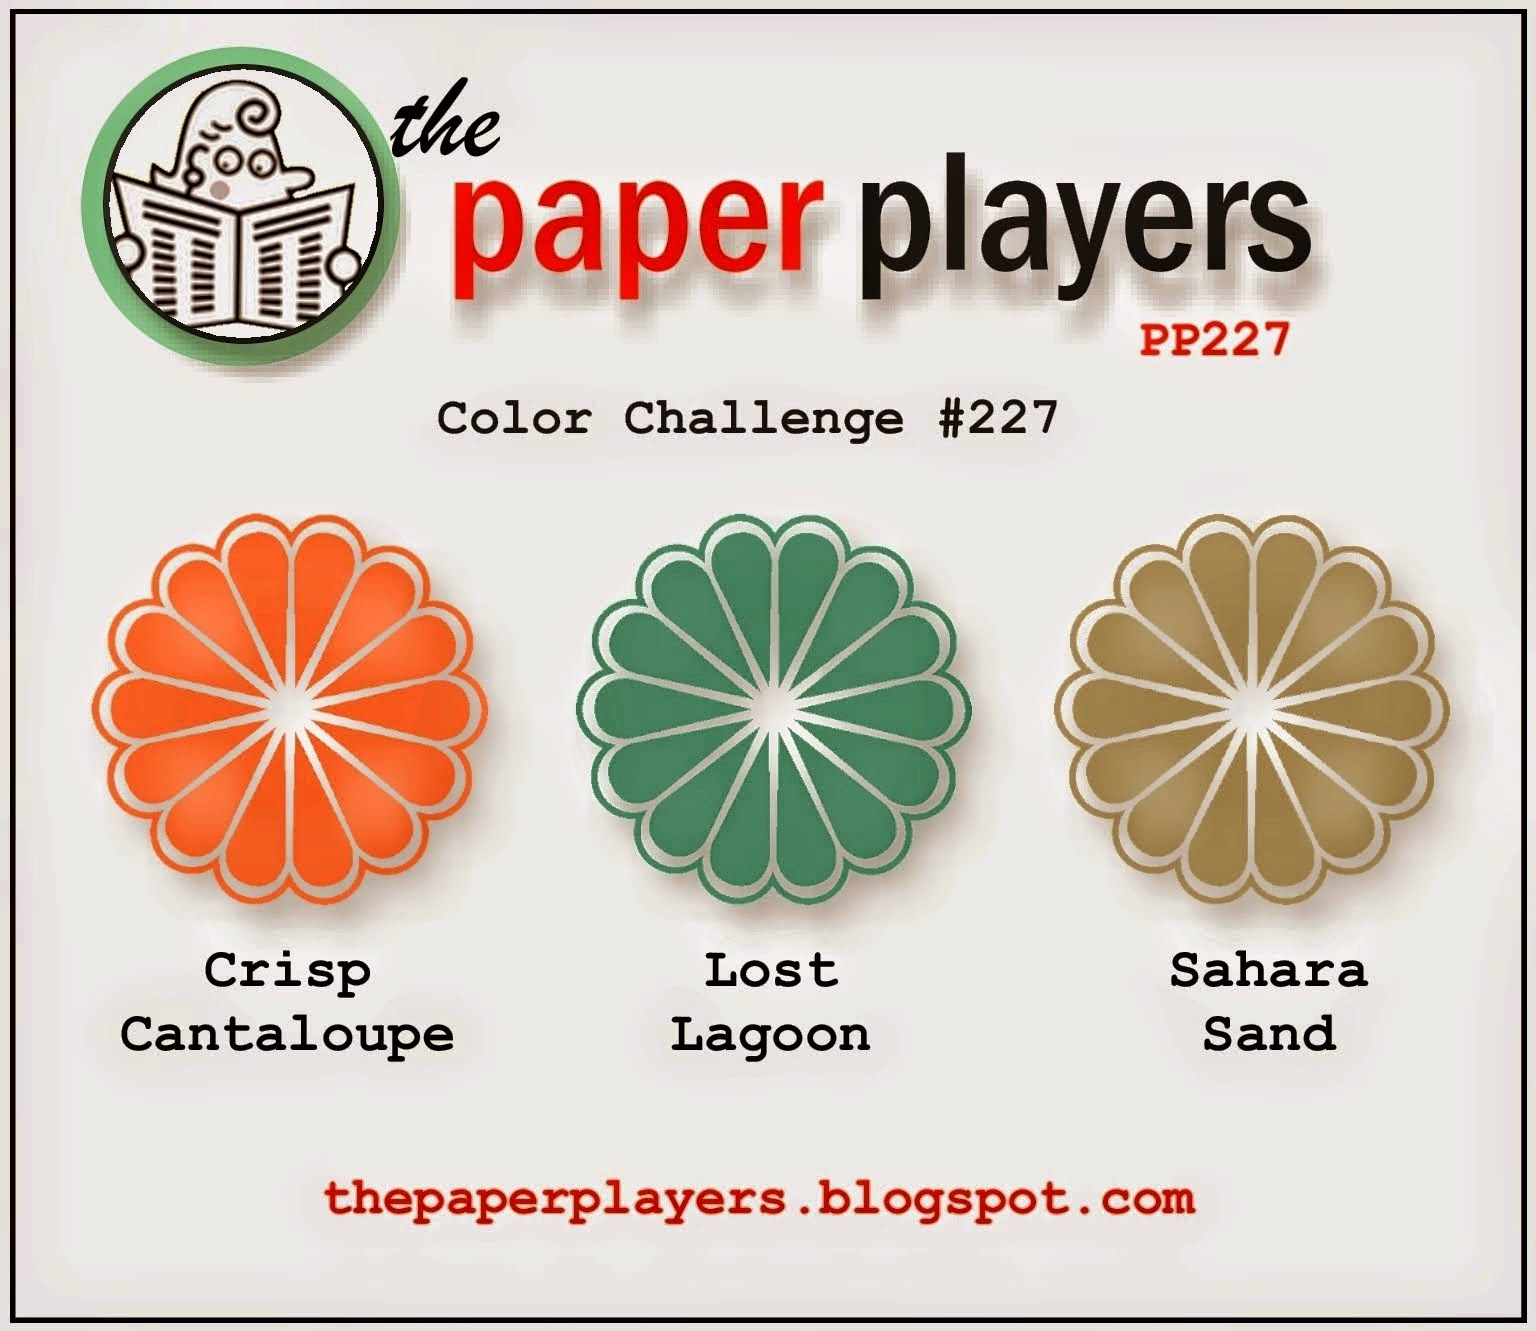 http://thepaperplayers.blogspot.ca/2015/01/the-paper-players-challenge-227-anns.html